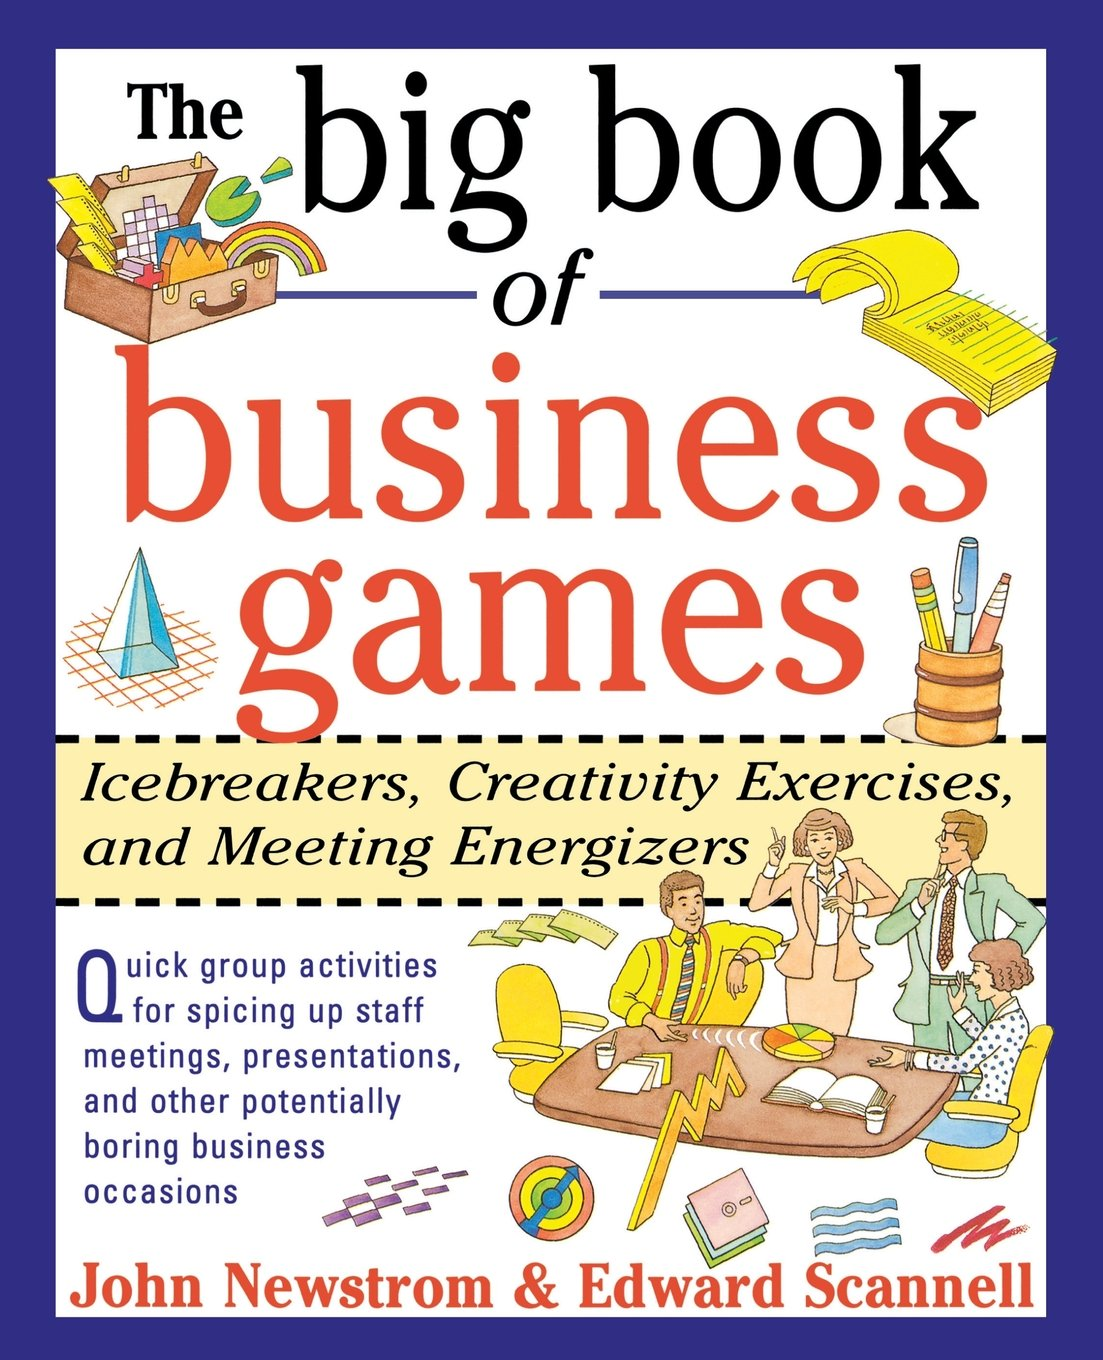 Big Book Business Games Icebreakers product image